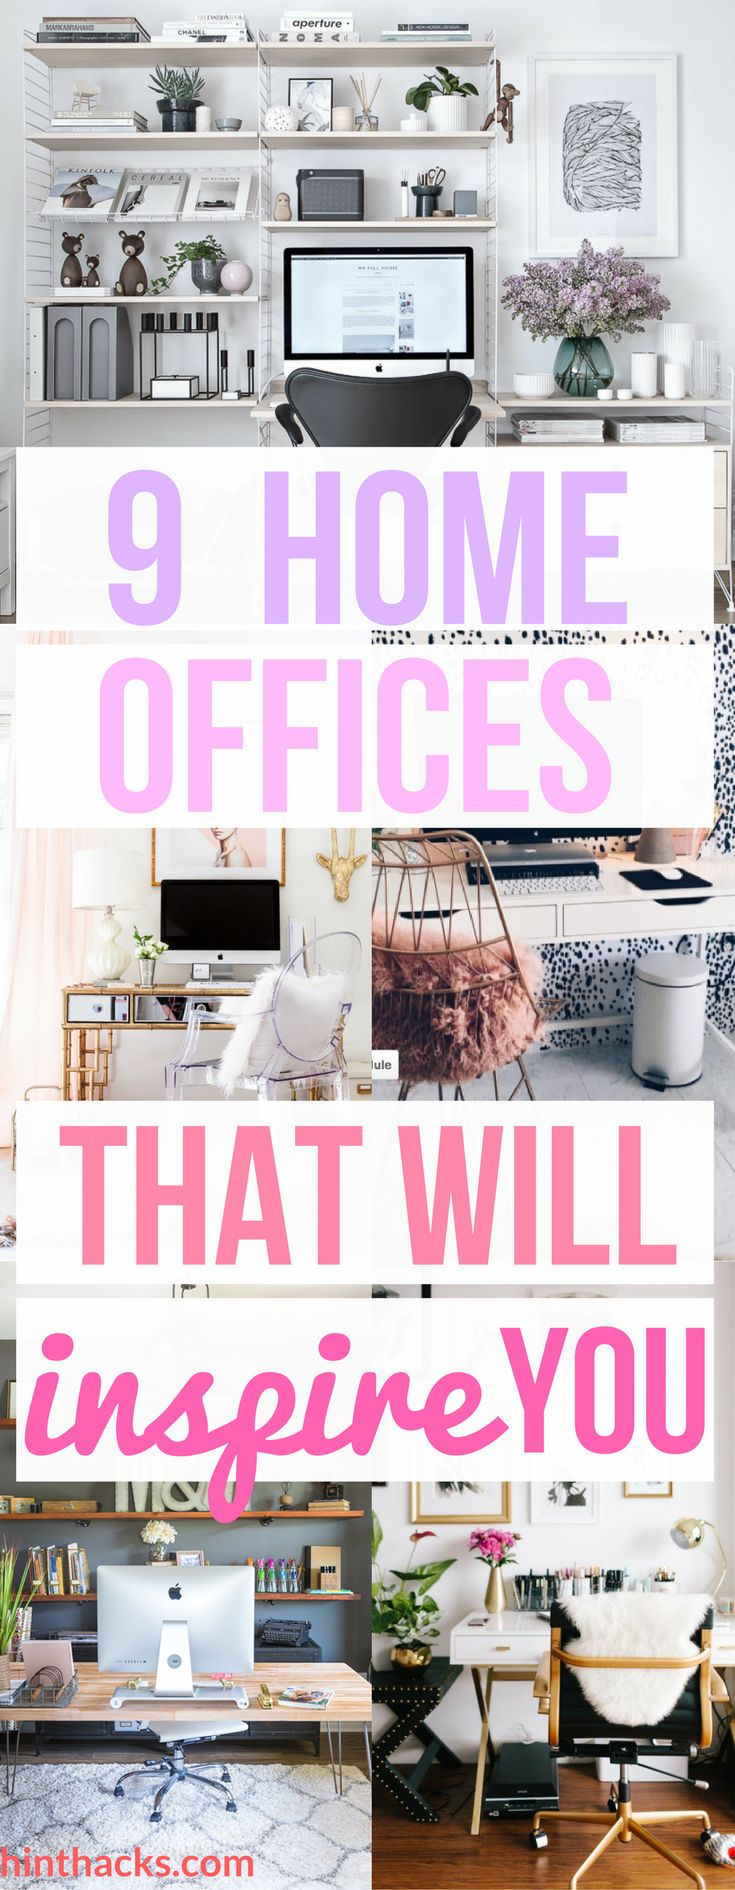 Design Your Own Office Stunning Decorating Design